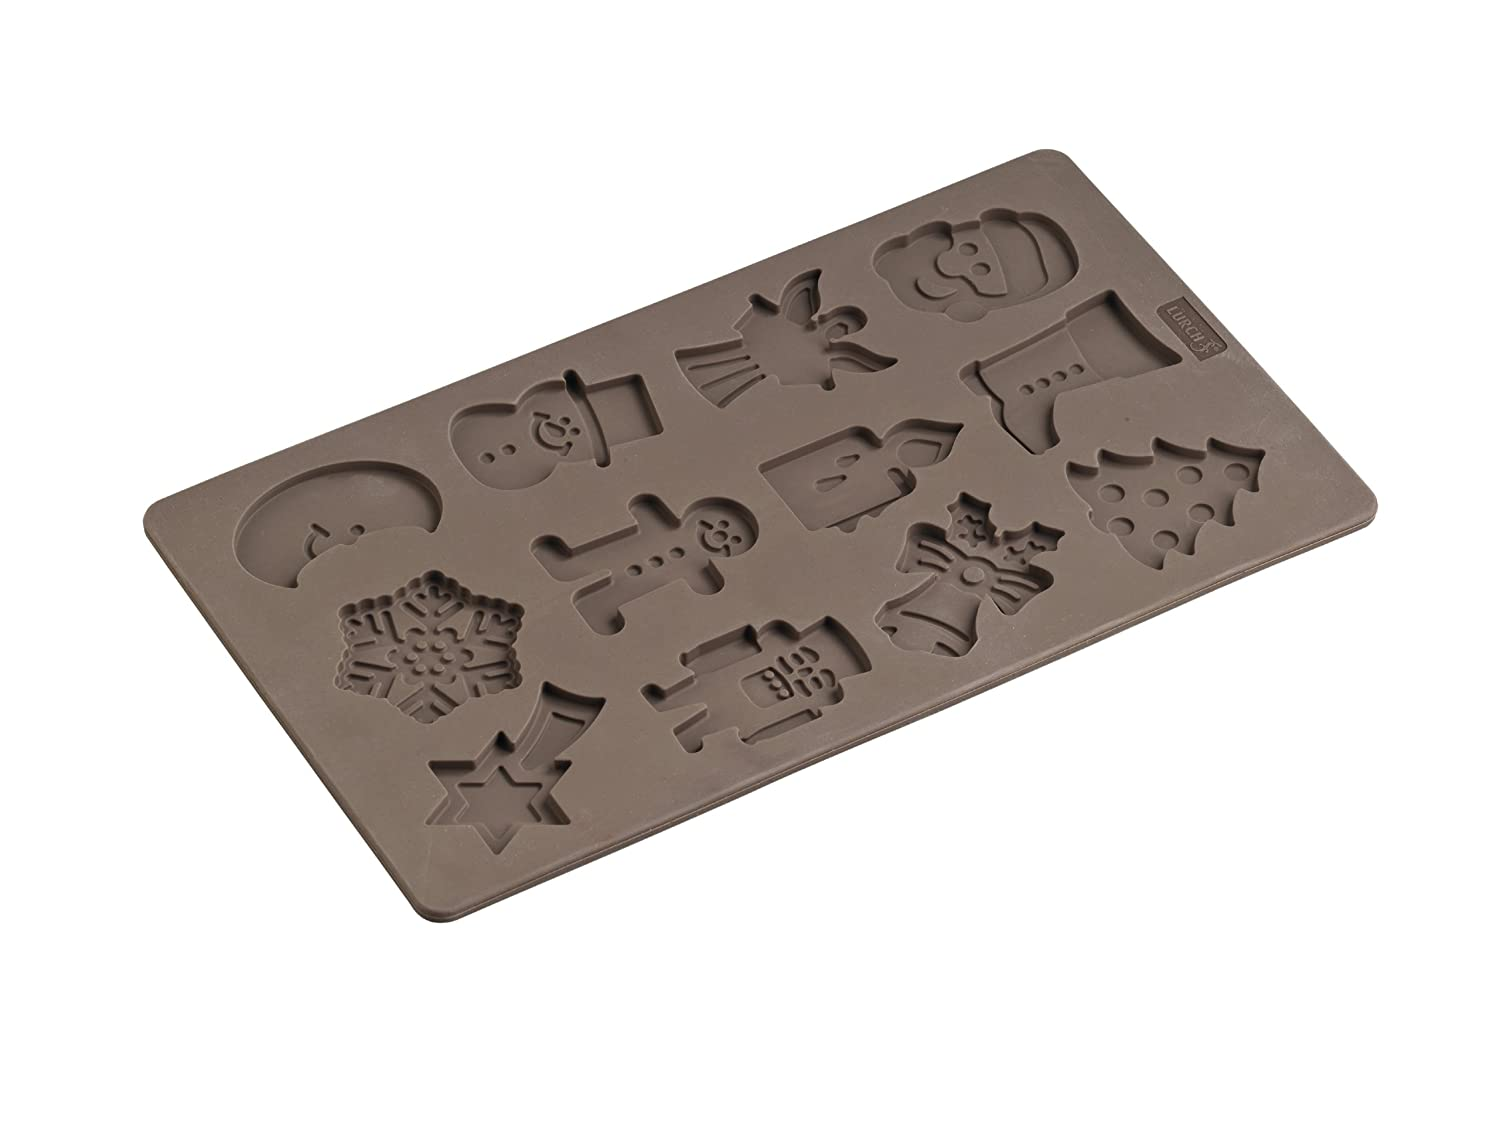 Lurch FlexiForm Winterzeit (Winter Time) 65021 Biscuit Tray with Moulds 17 x 30 cm Brown Lurch AG